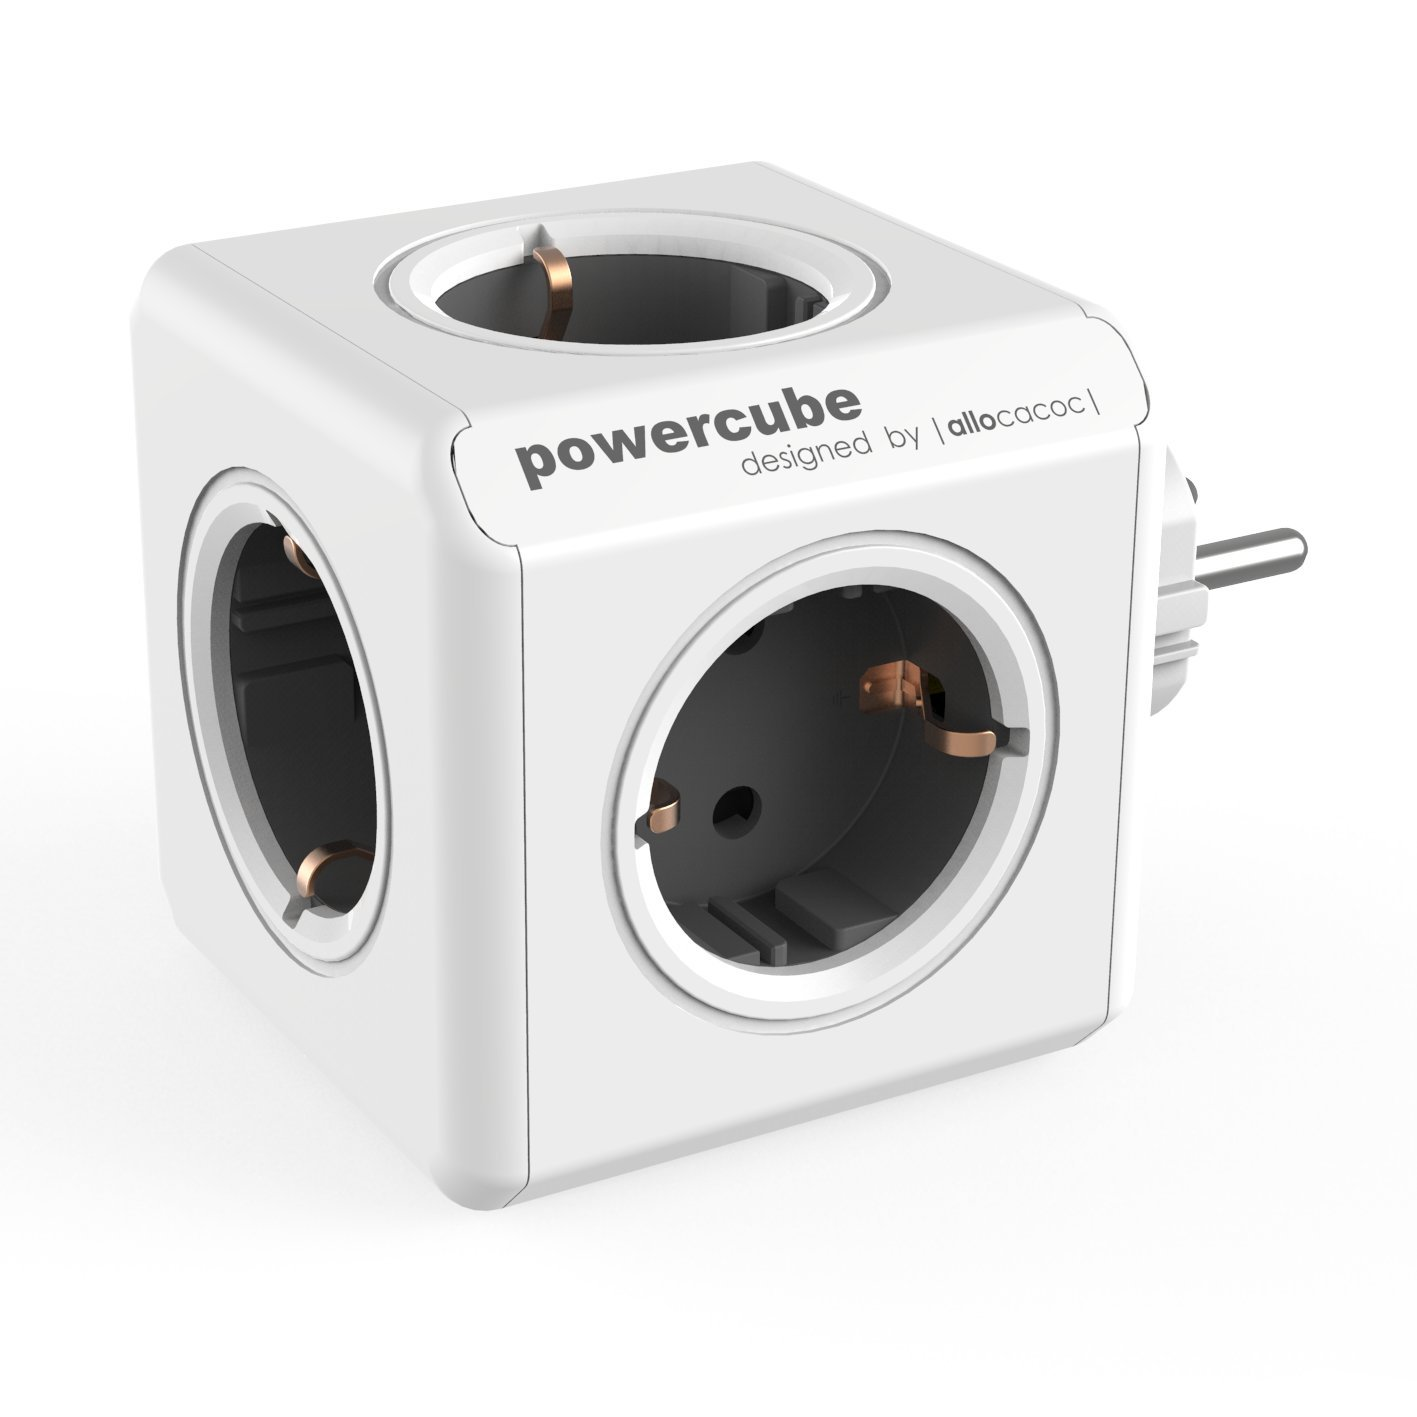 Allocacoc 1100GY/DEORPC - PowerCube (Original) 5 Salidas Gris Oscuro product image